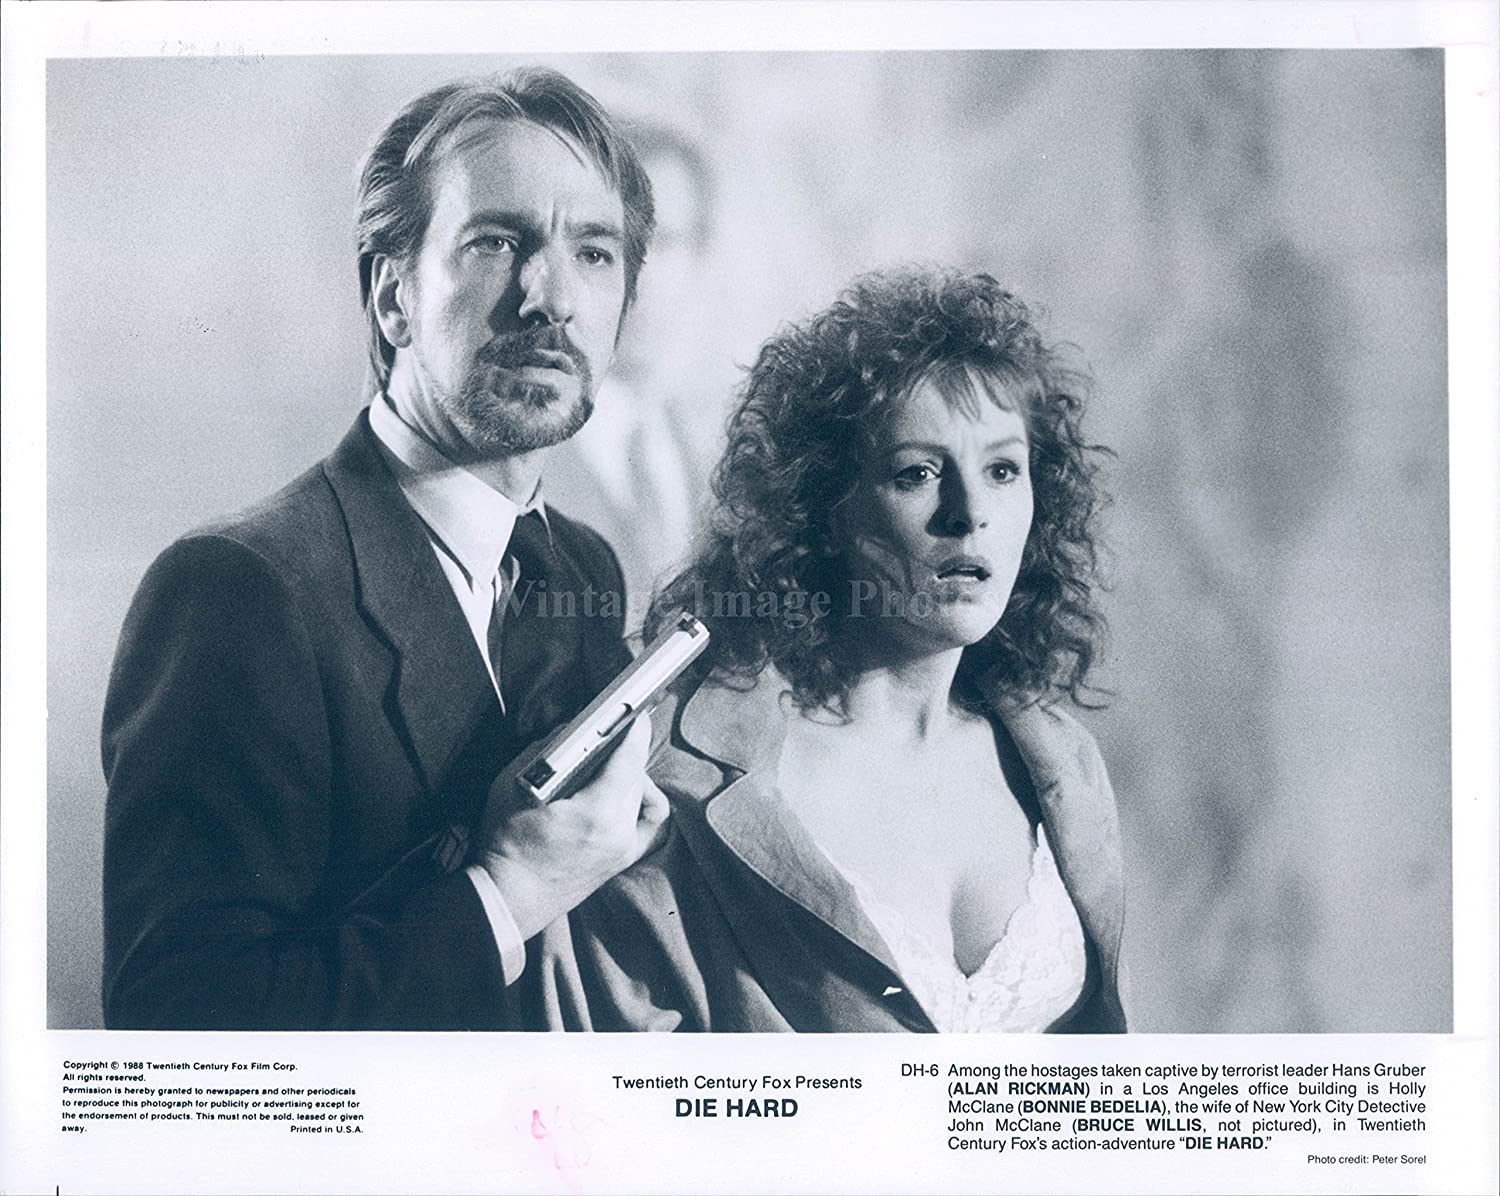 Photo Alan Rickman Actor Bonnie Bedelia Actress Die Hard Movie Vintage:  Amazon.co.uk: Kitchen & Home